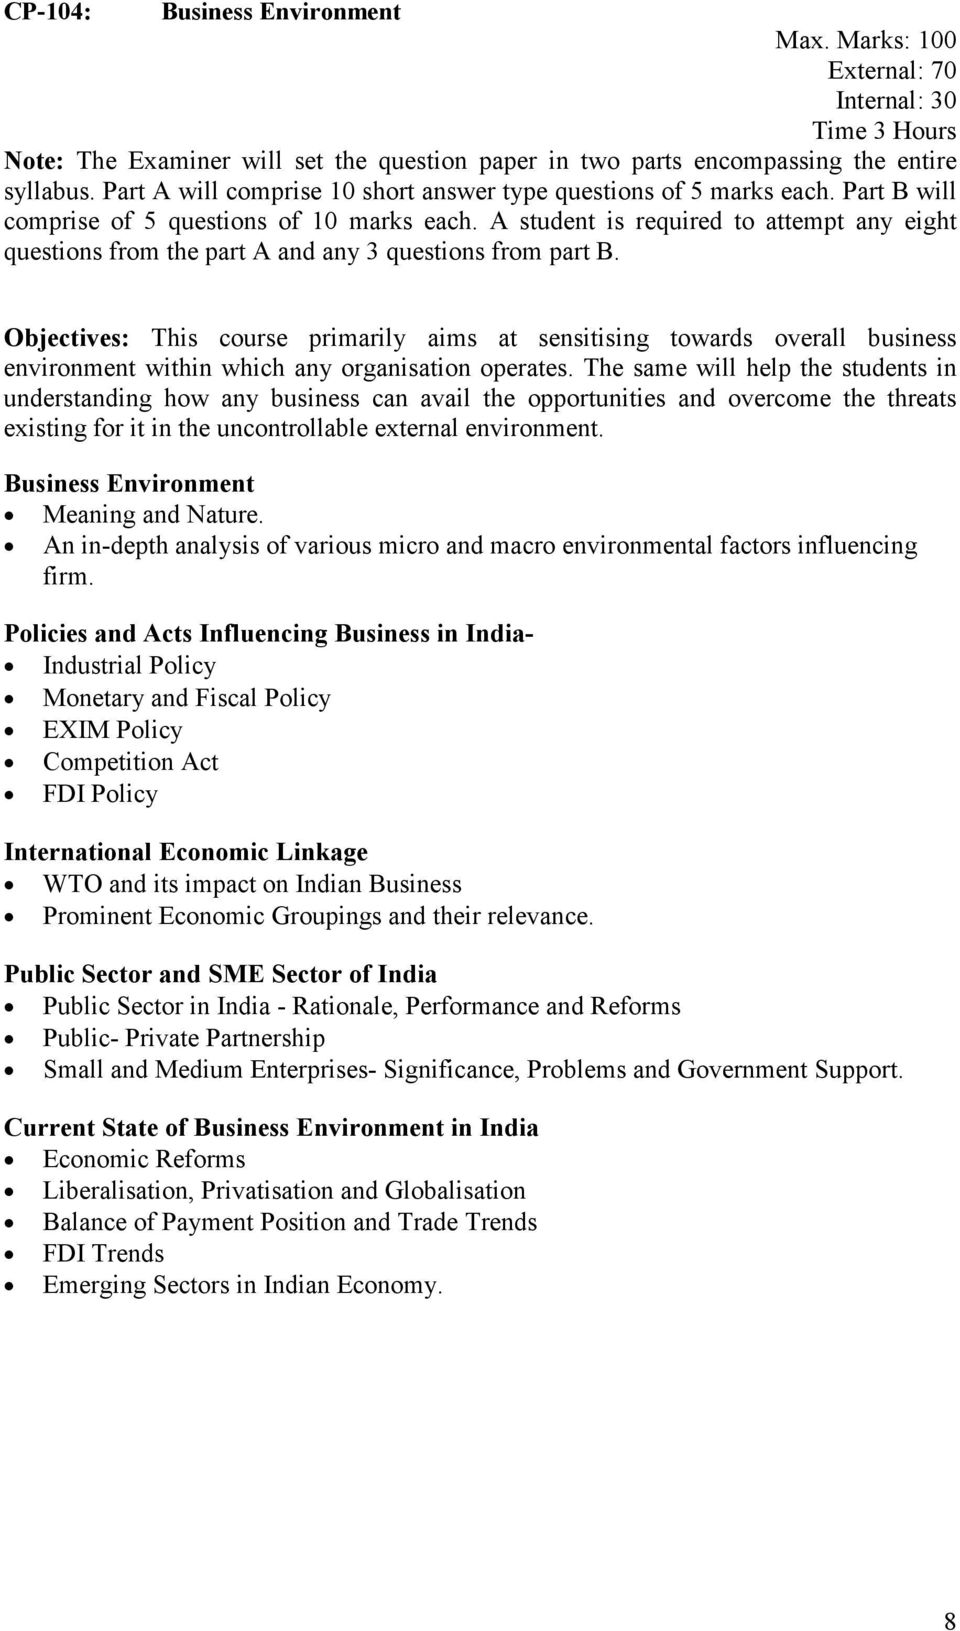 Business Environment Meaning and Nature. An in-depth analysis of various micro and macro environmental factors influencing firm.